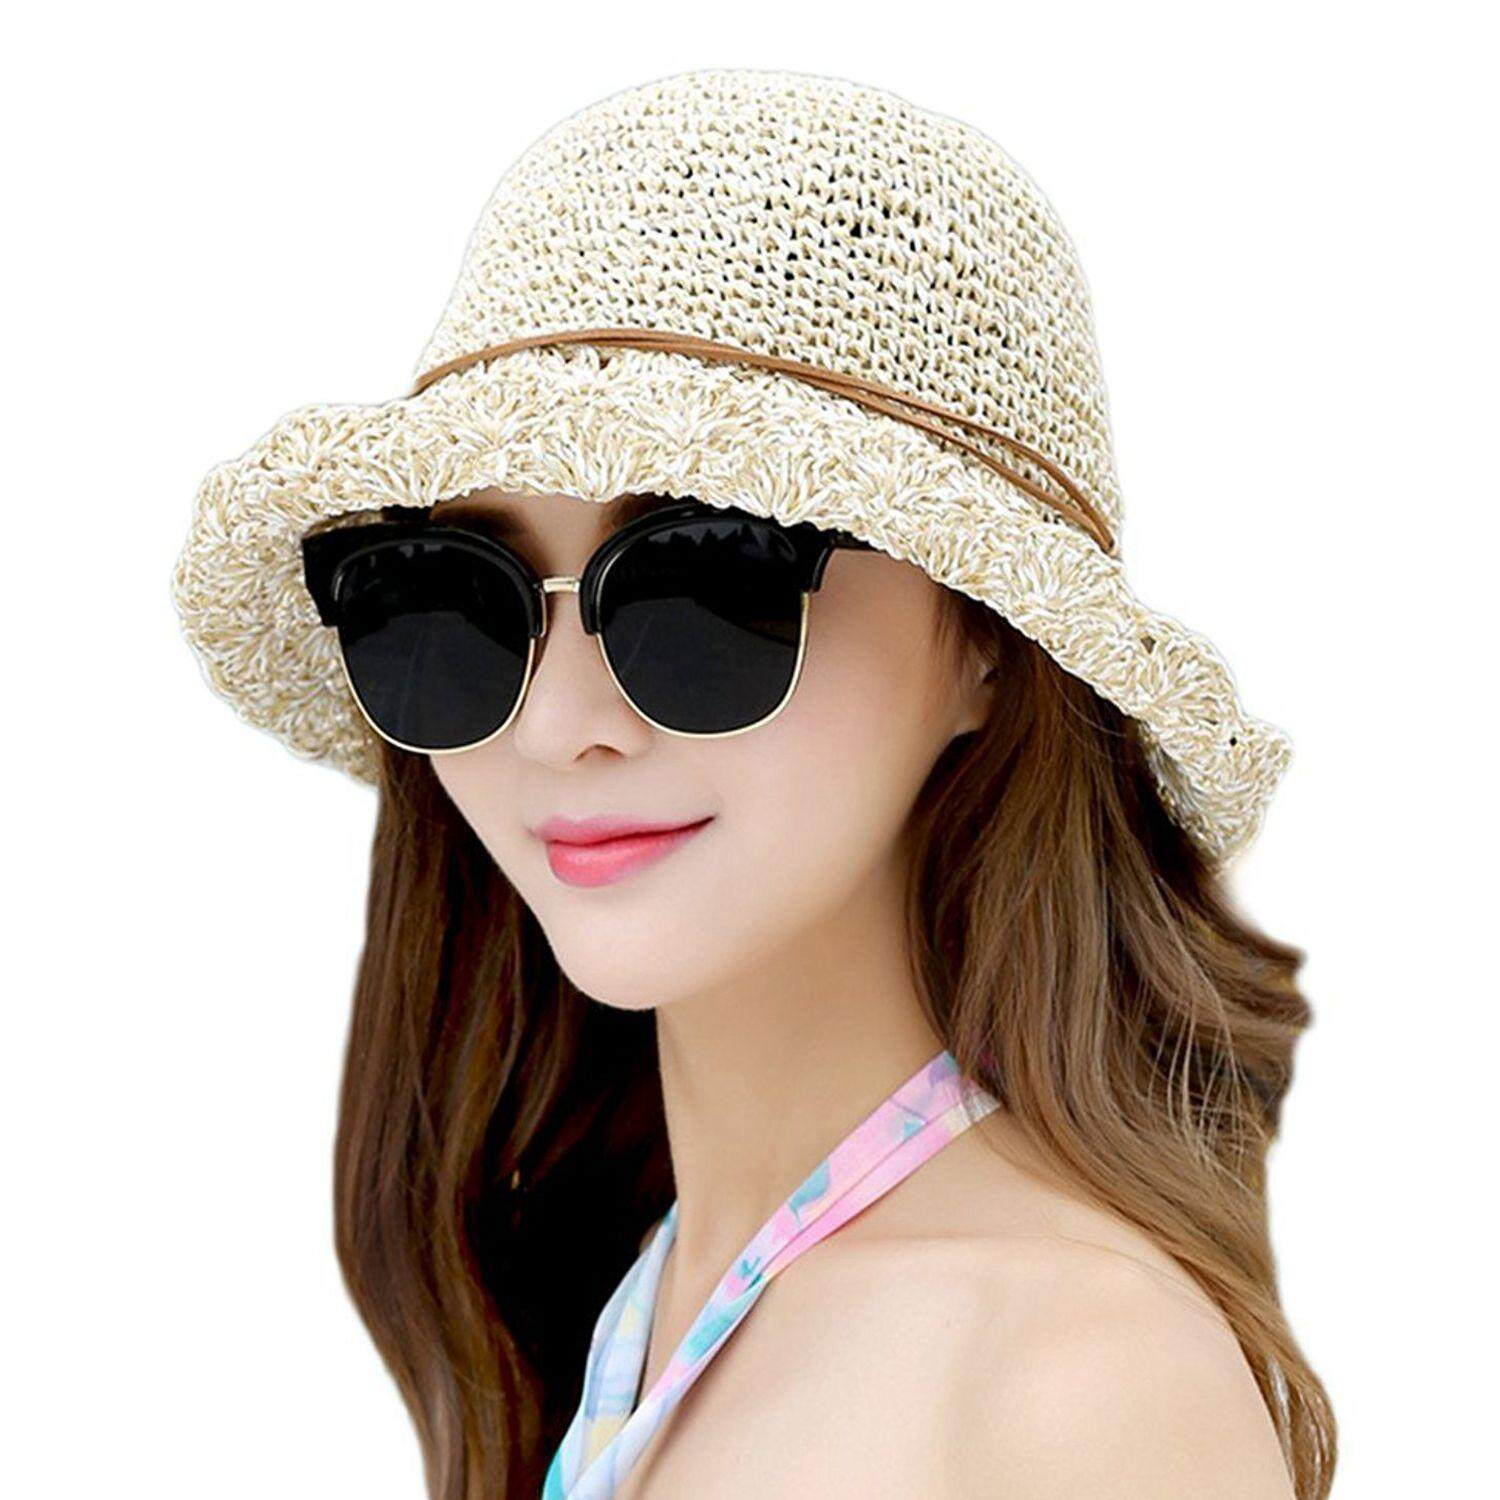 2022b0307f6 Sun Hat Bucket Girls Lady Beach Straw Hat Summer Sun Protection Packable  Foldable Cap Bow-